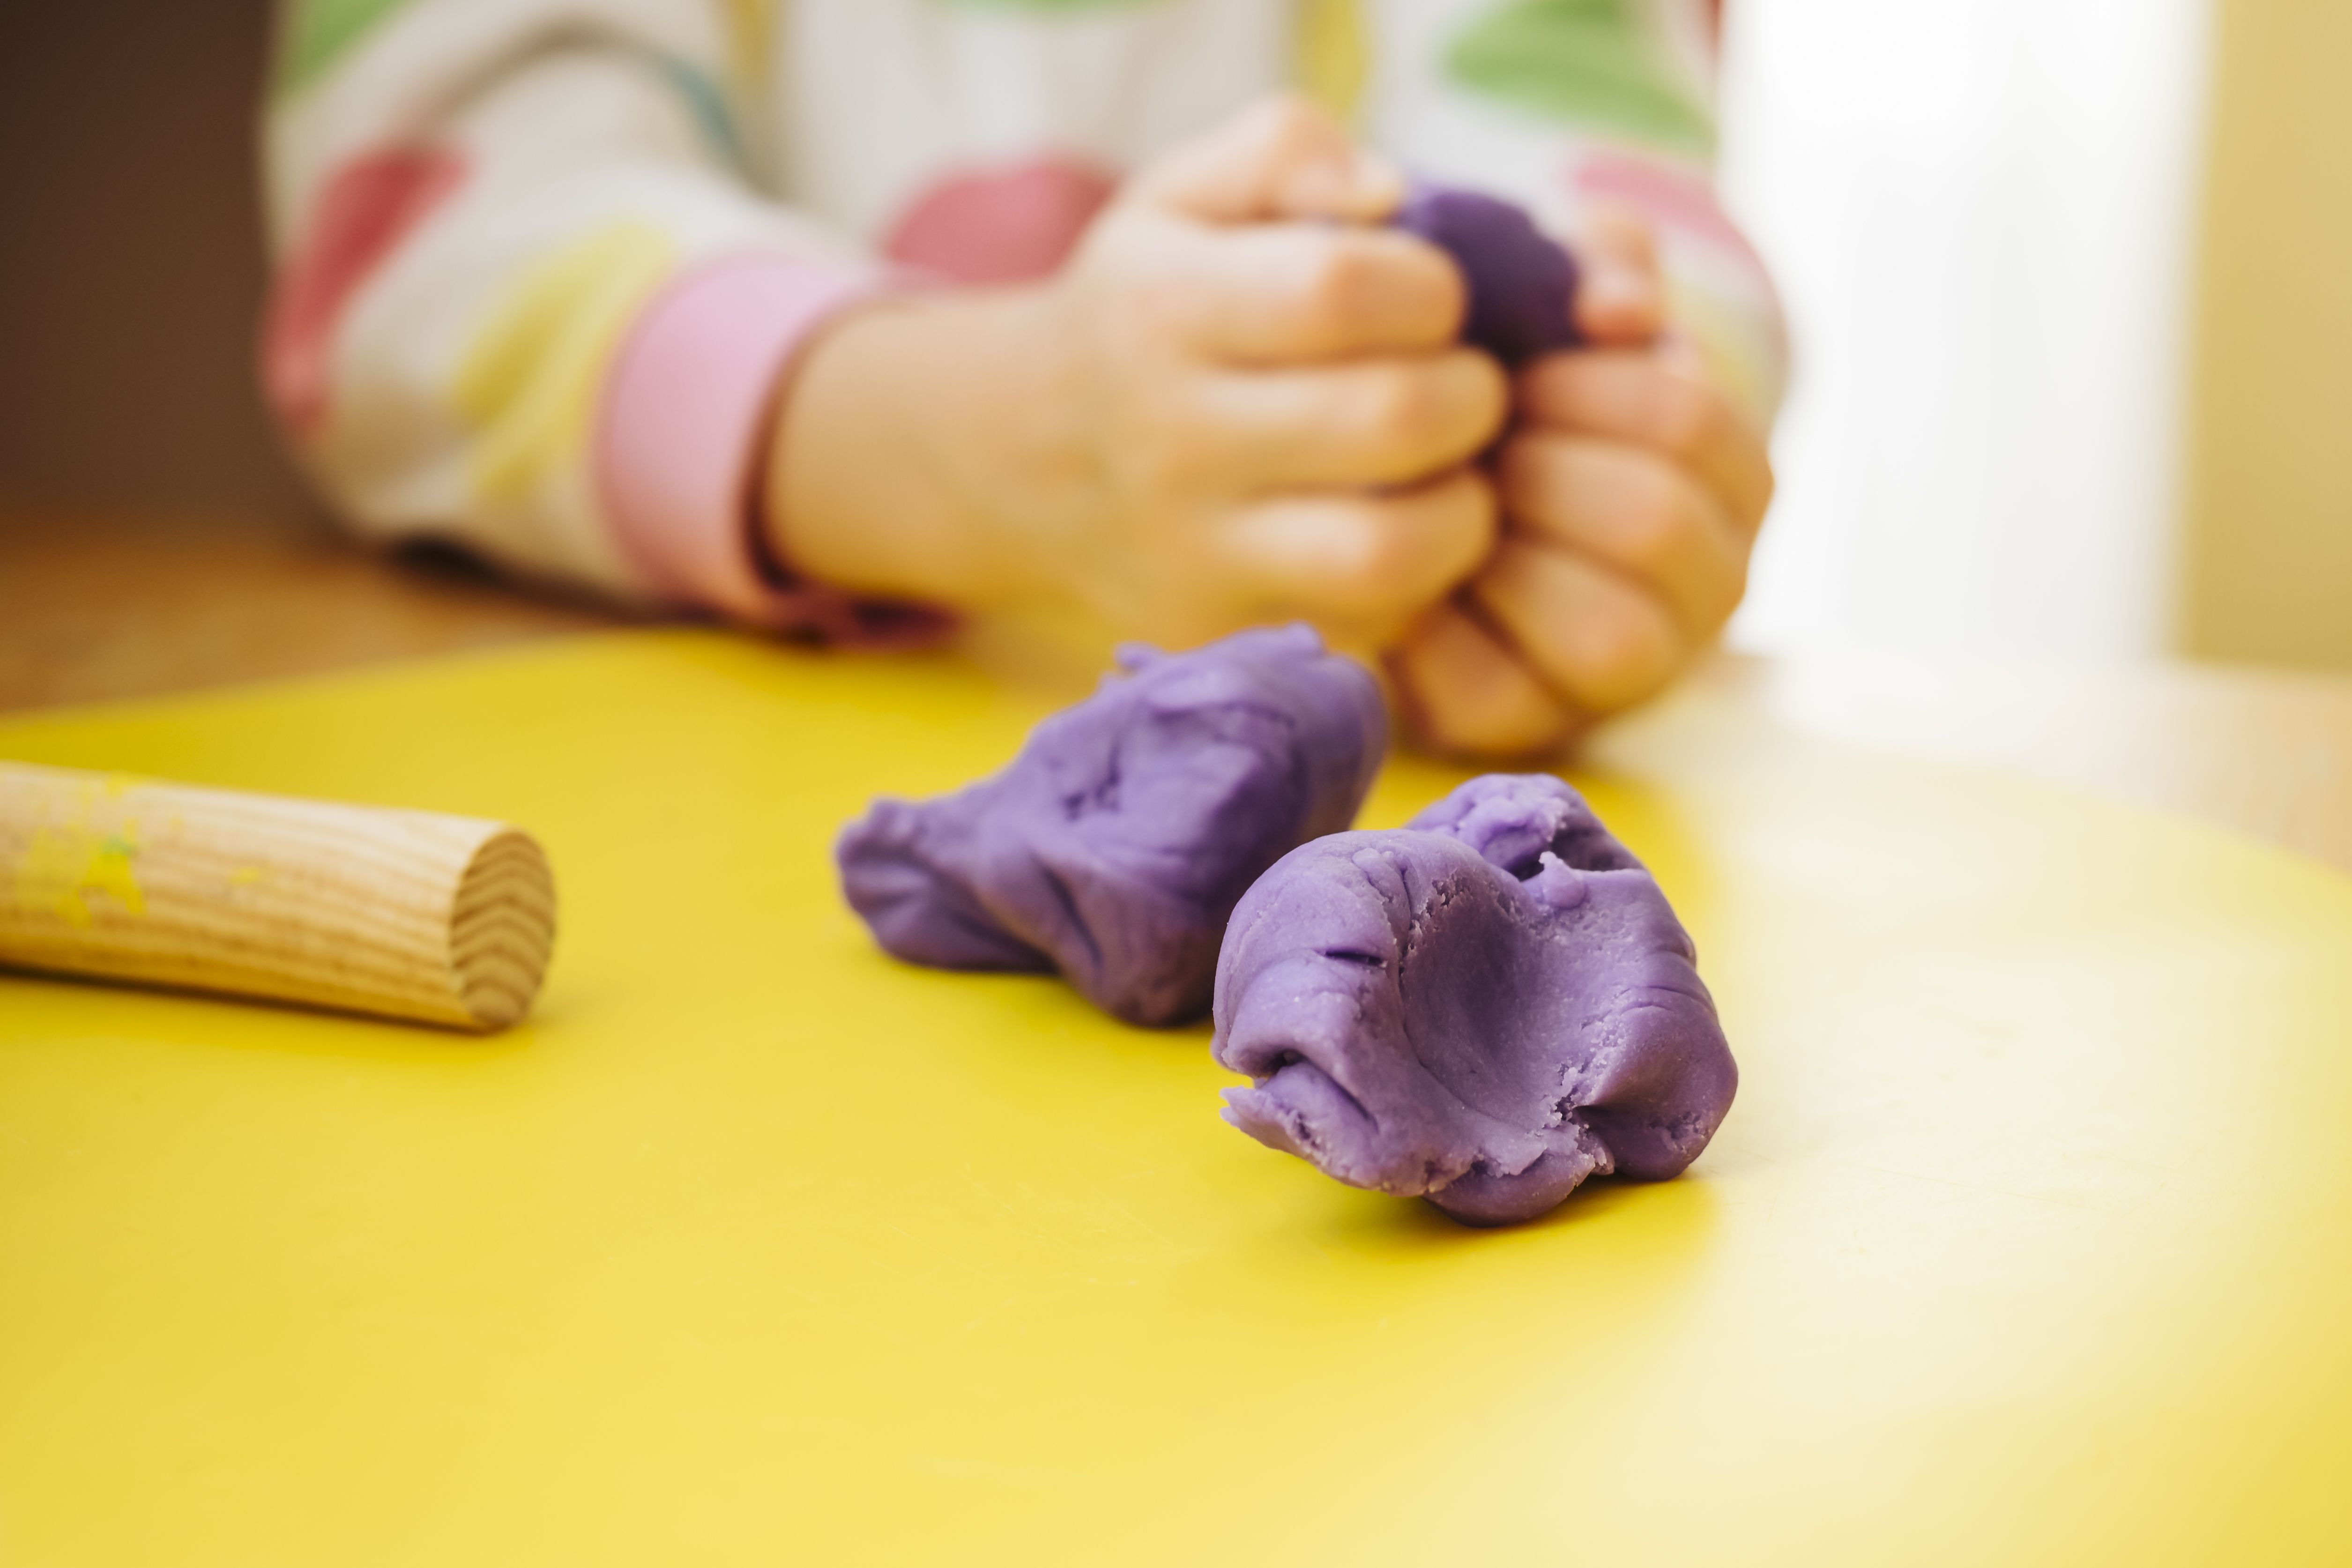 When Is It Safe for Your Toddler to Eat Play Dough?